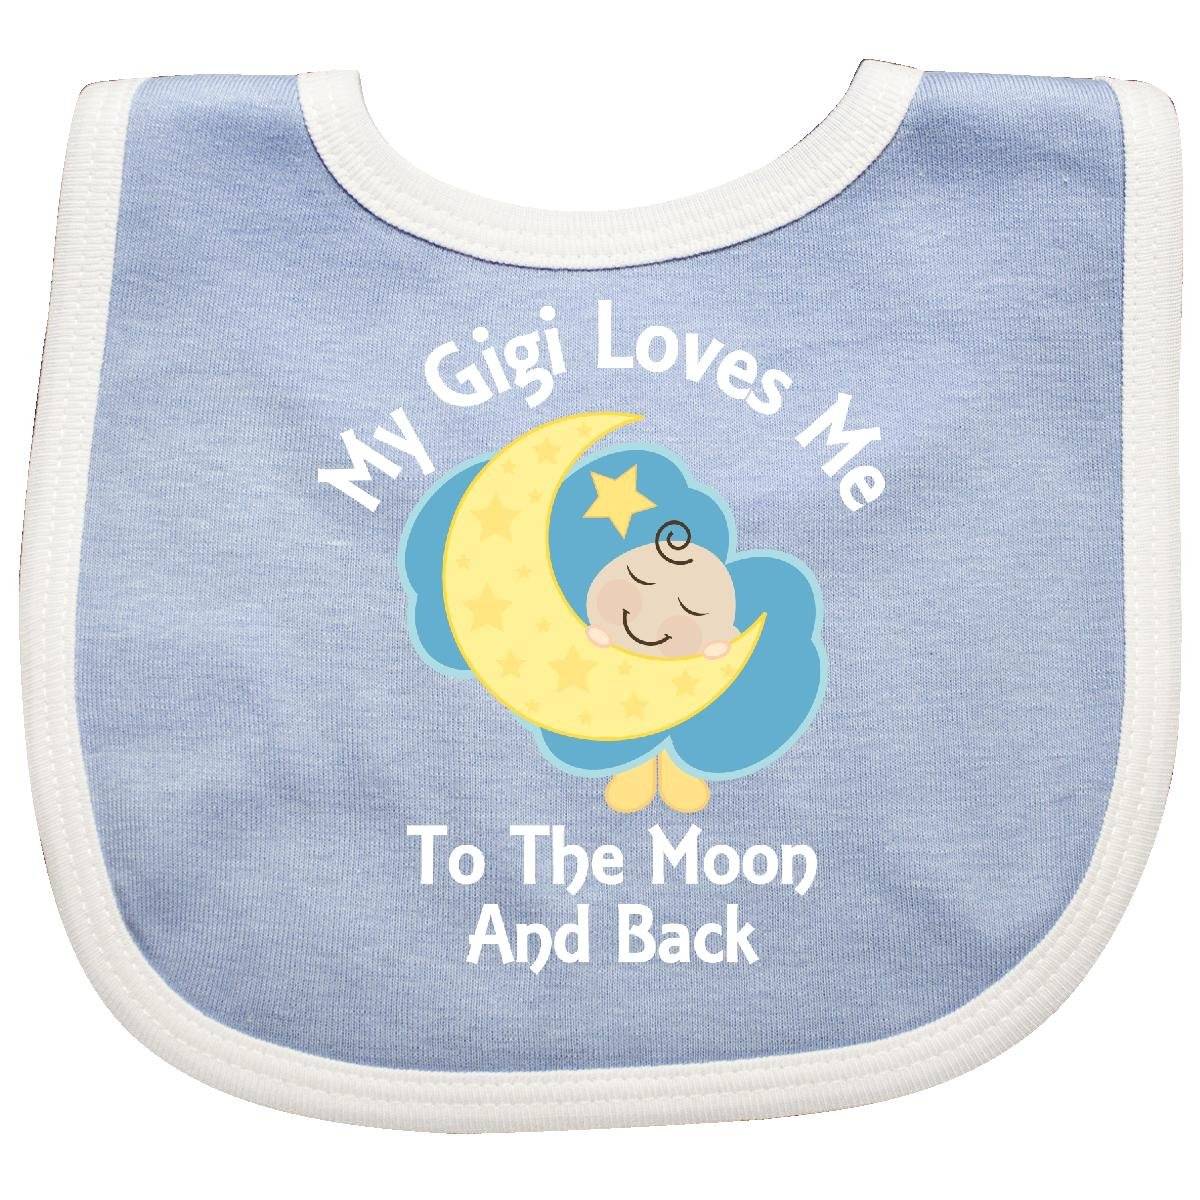 Inktastic - Gigi Loves Me to The Moon and Back Baby Bib 262f0 14-156400-116-893-2993